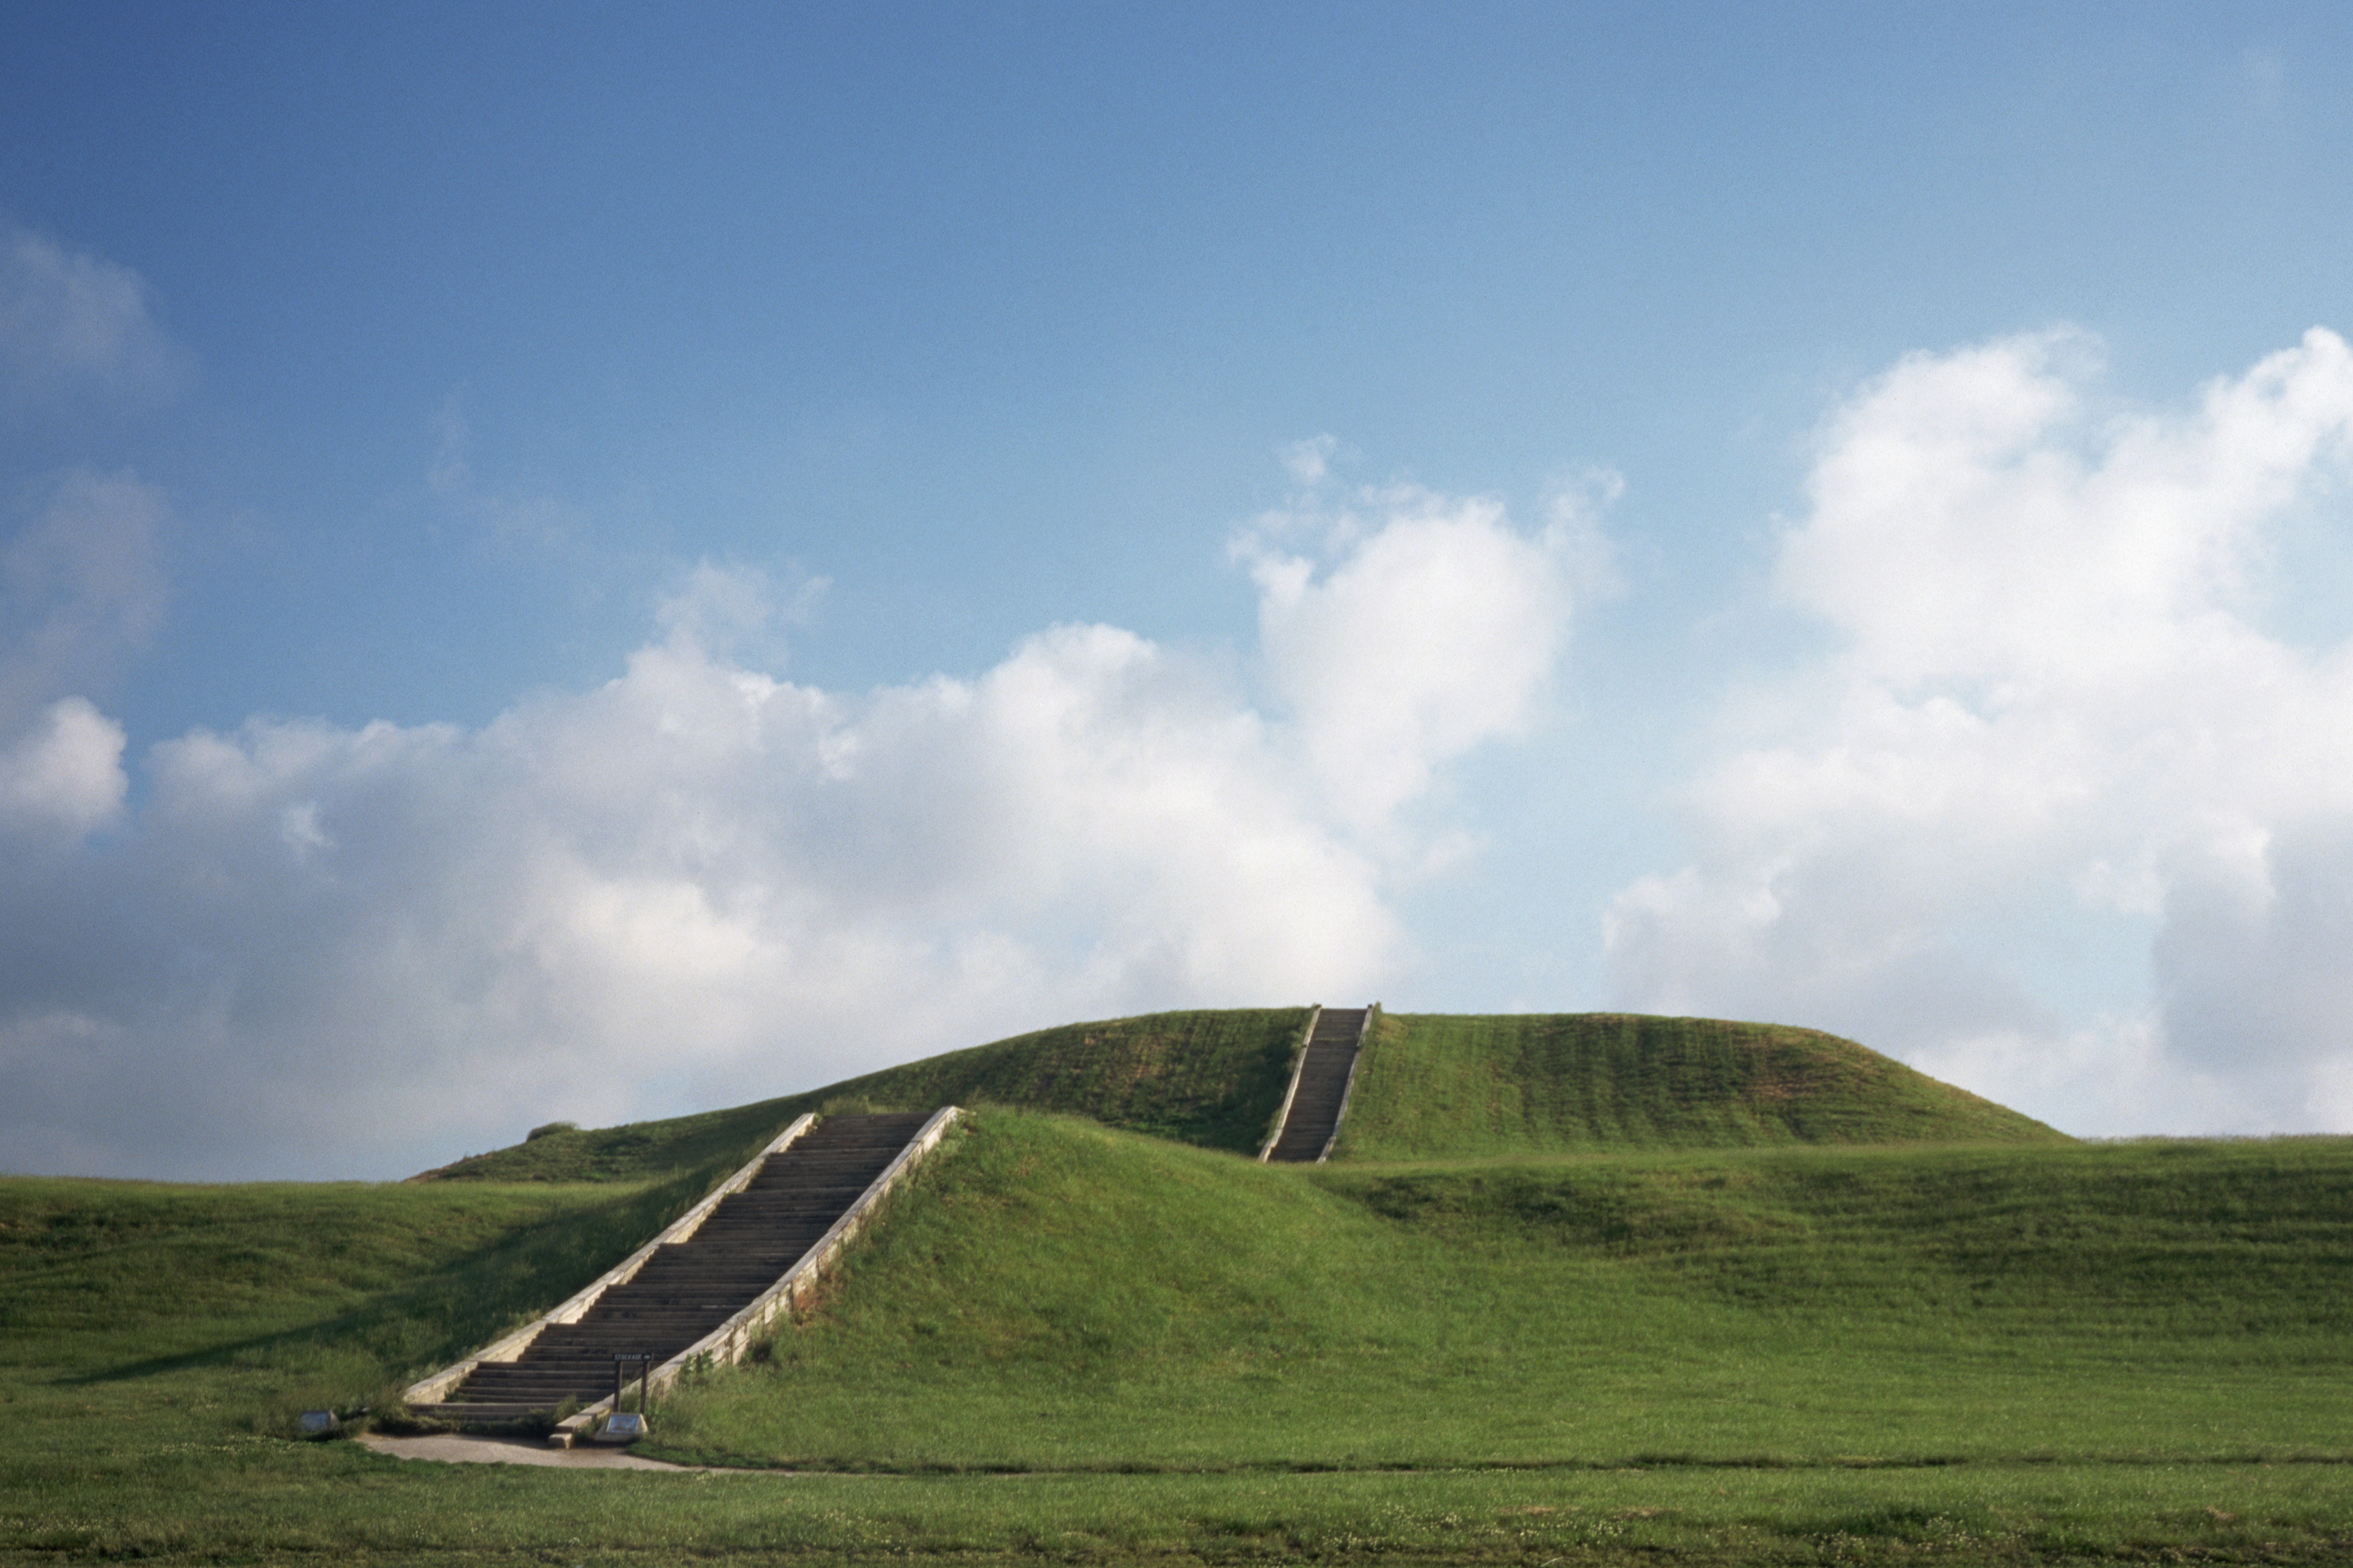 A mound at the ancient North American settlement of Cahokia.